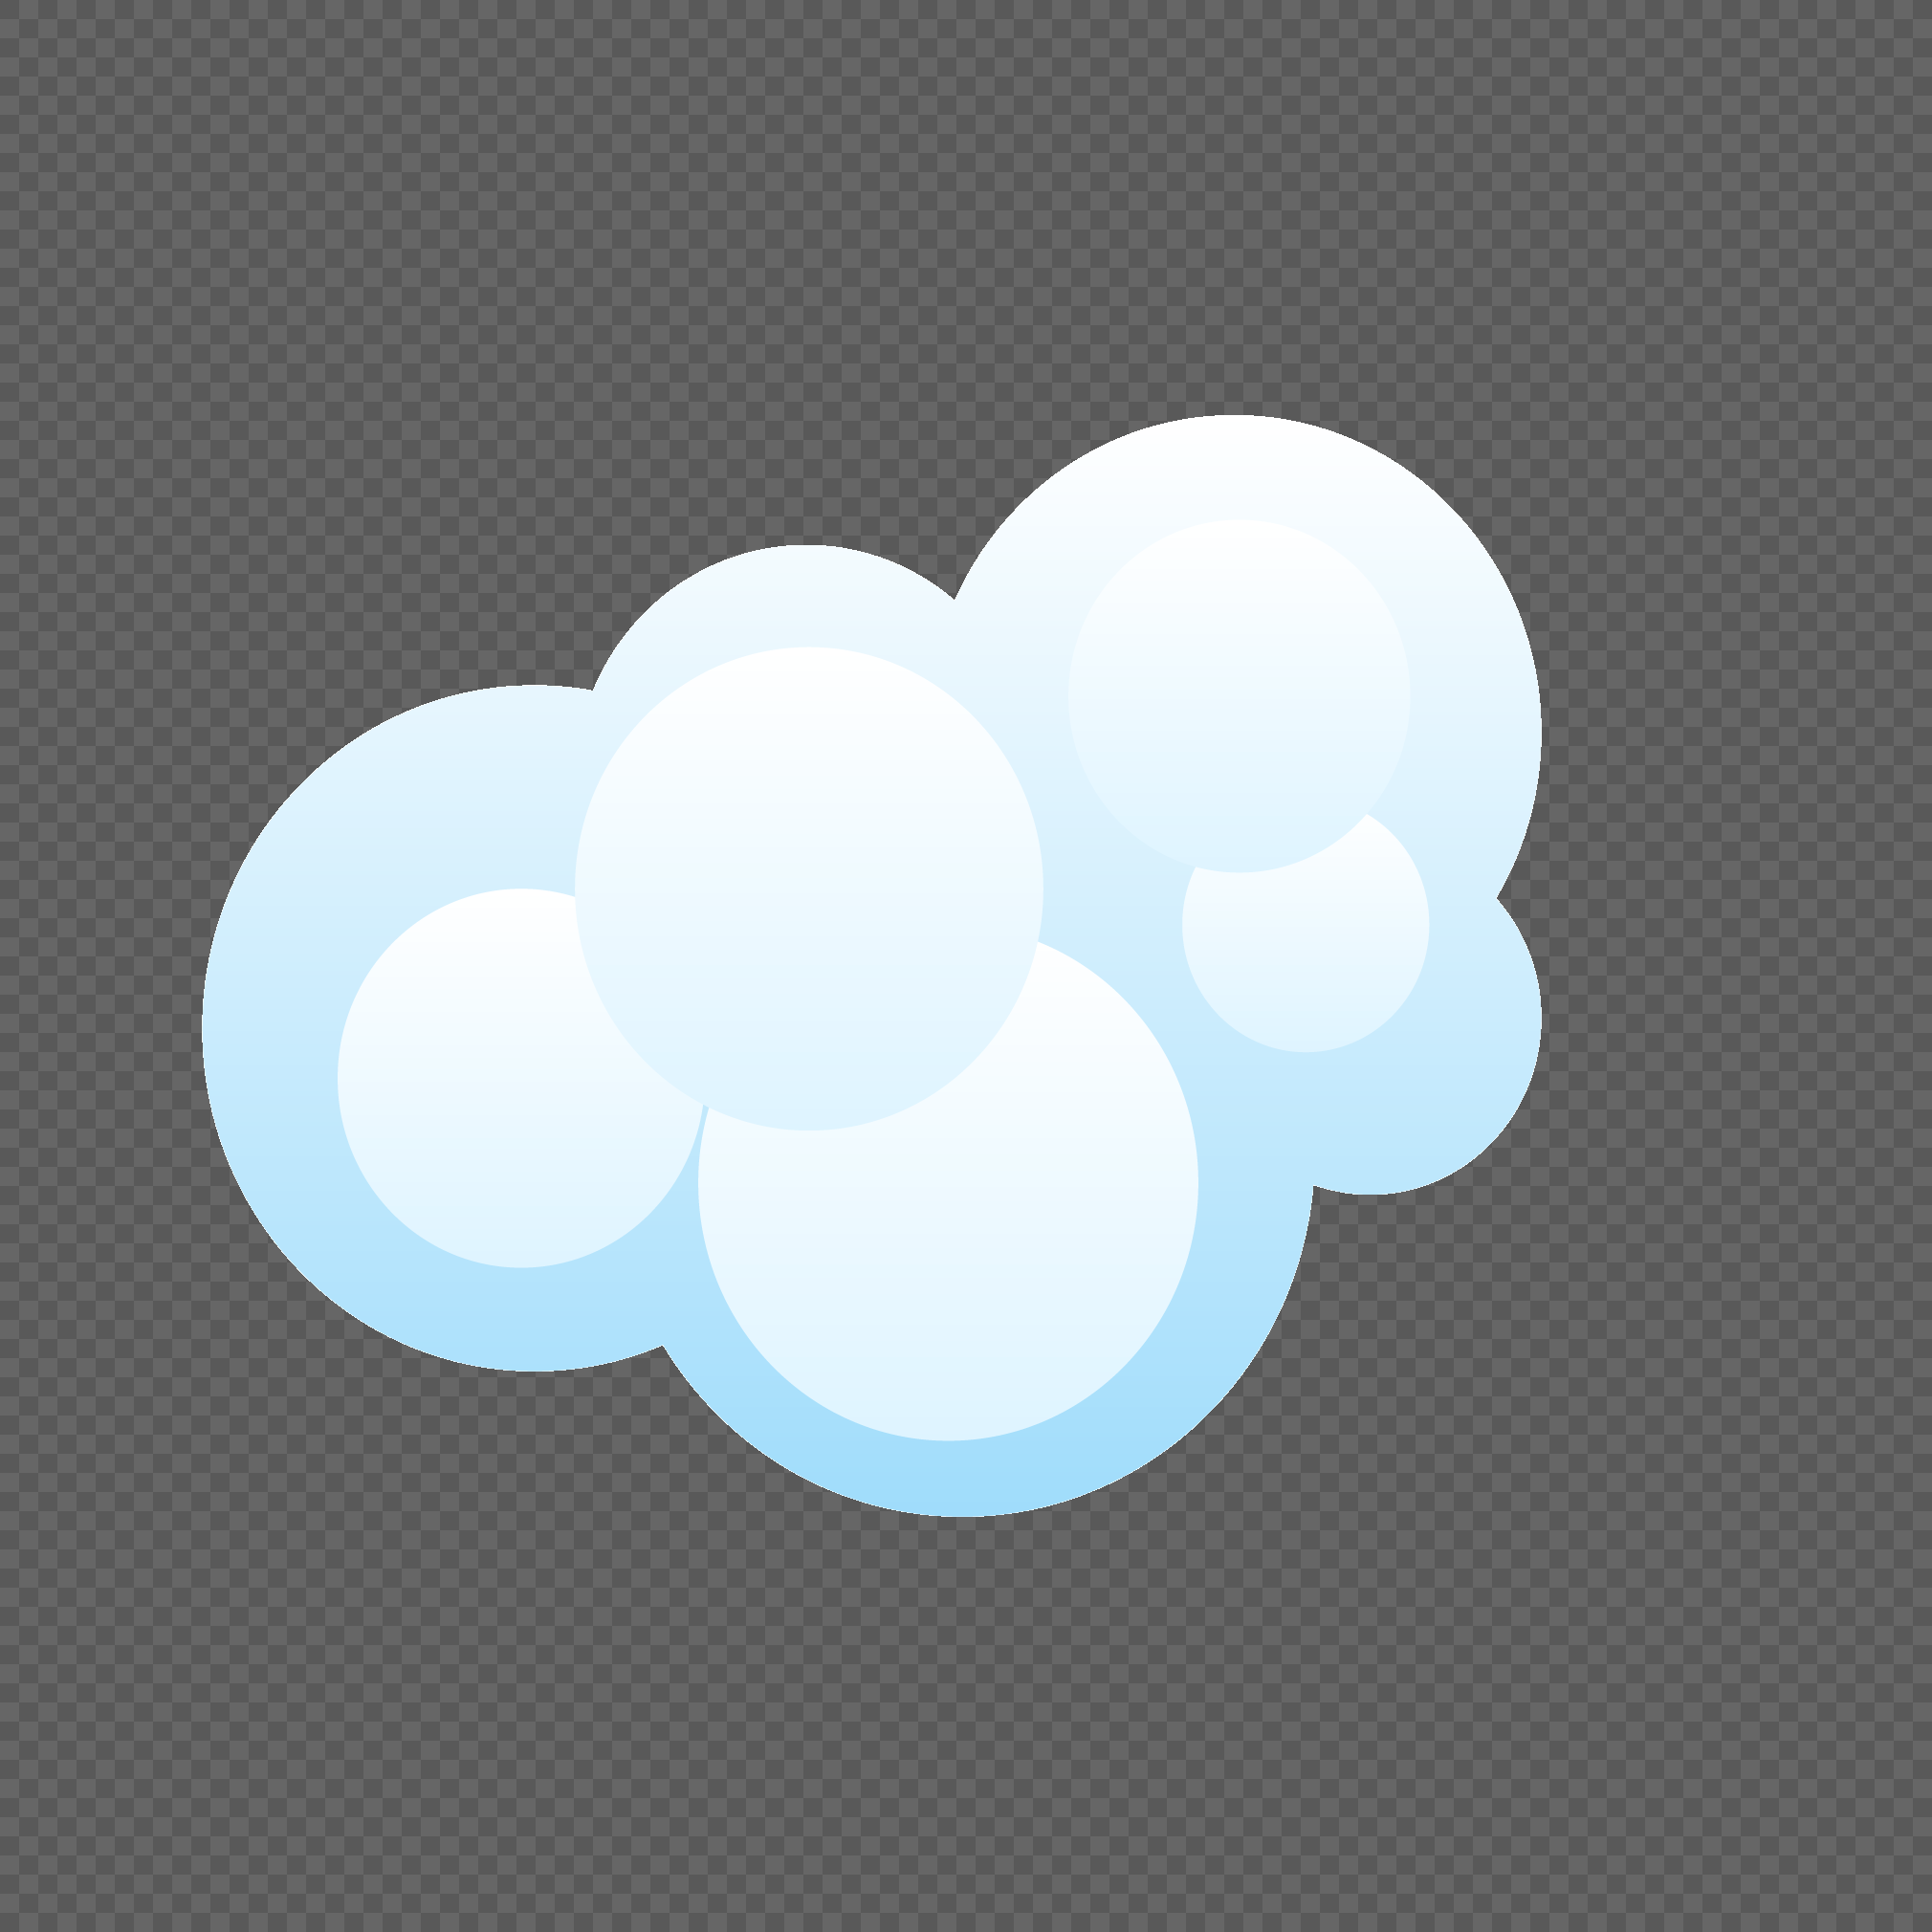 2020x2020 Cartoon Cloud Cloud Vector Png Image Picture Free Download